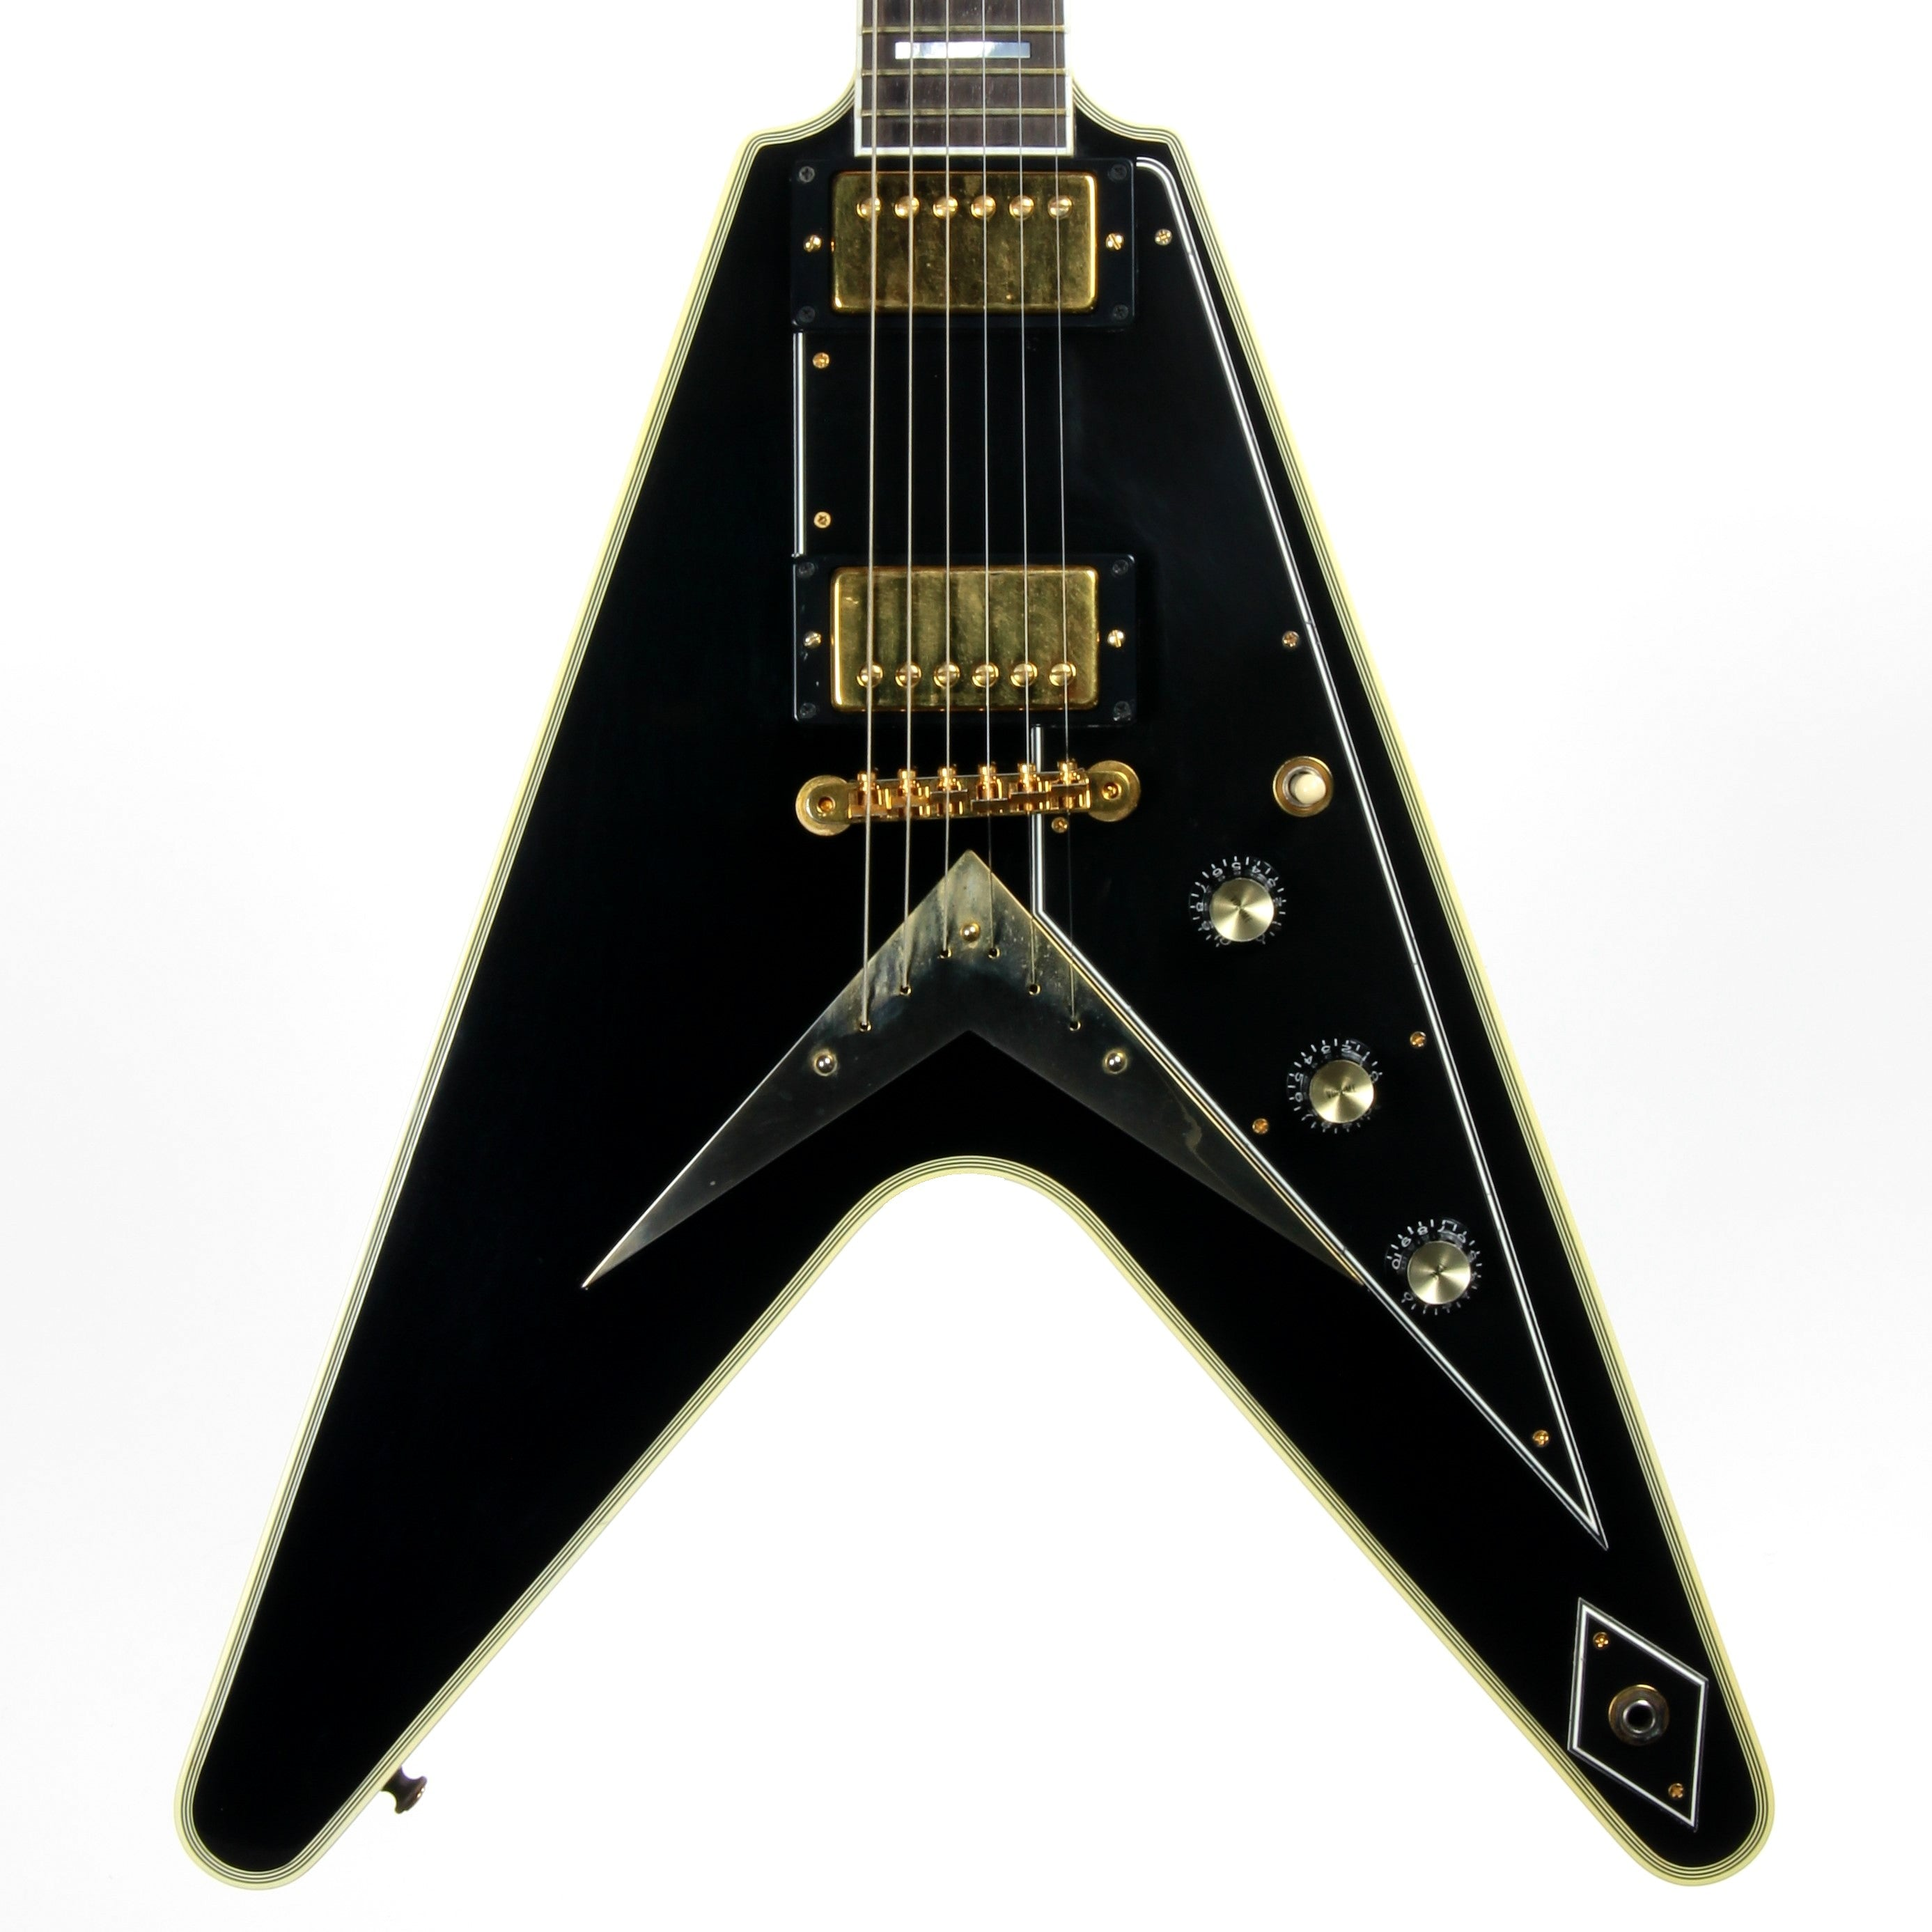 2002 Gibson Flying V Custom Shop Ebony Fingerboard Black Limited Edition Historic - Only 40 Made!